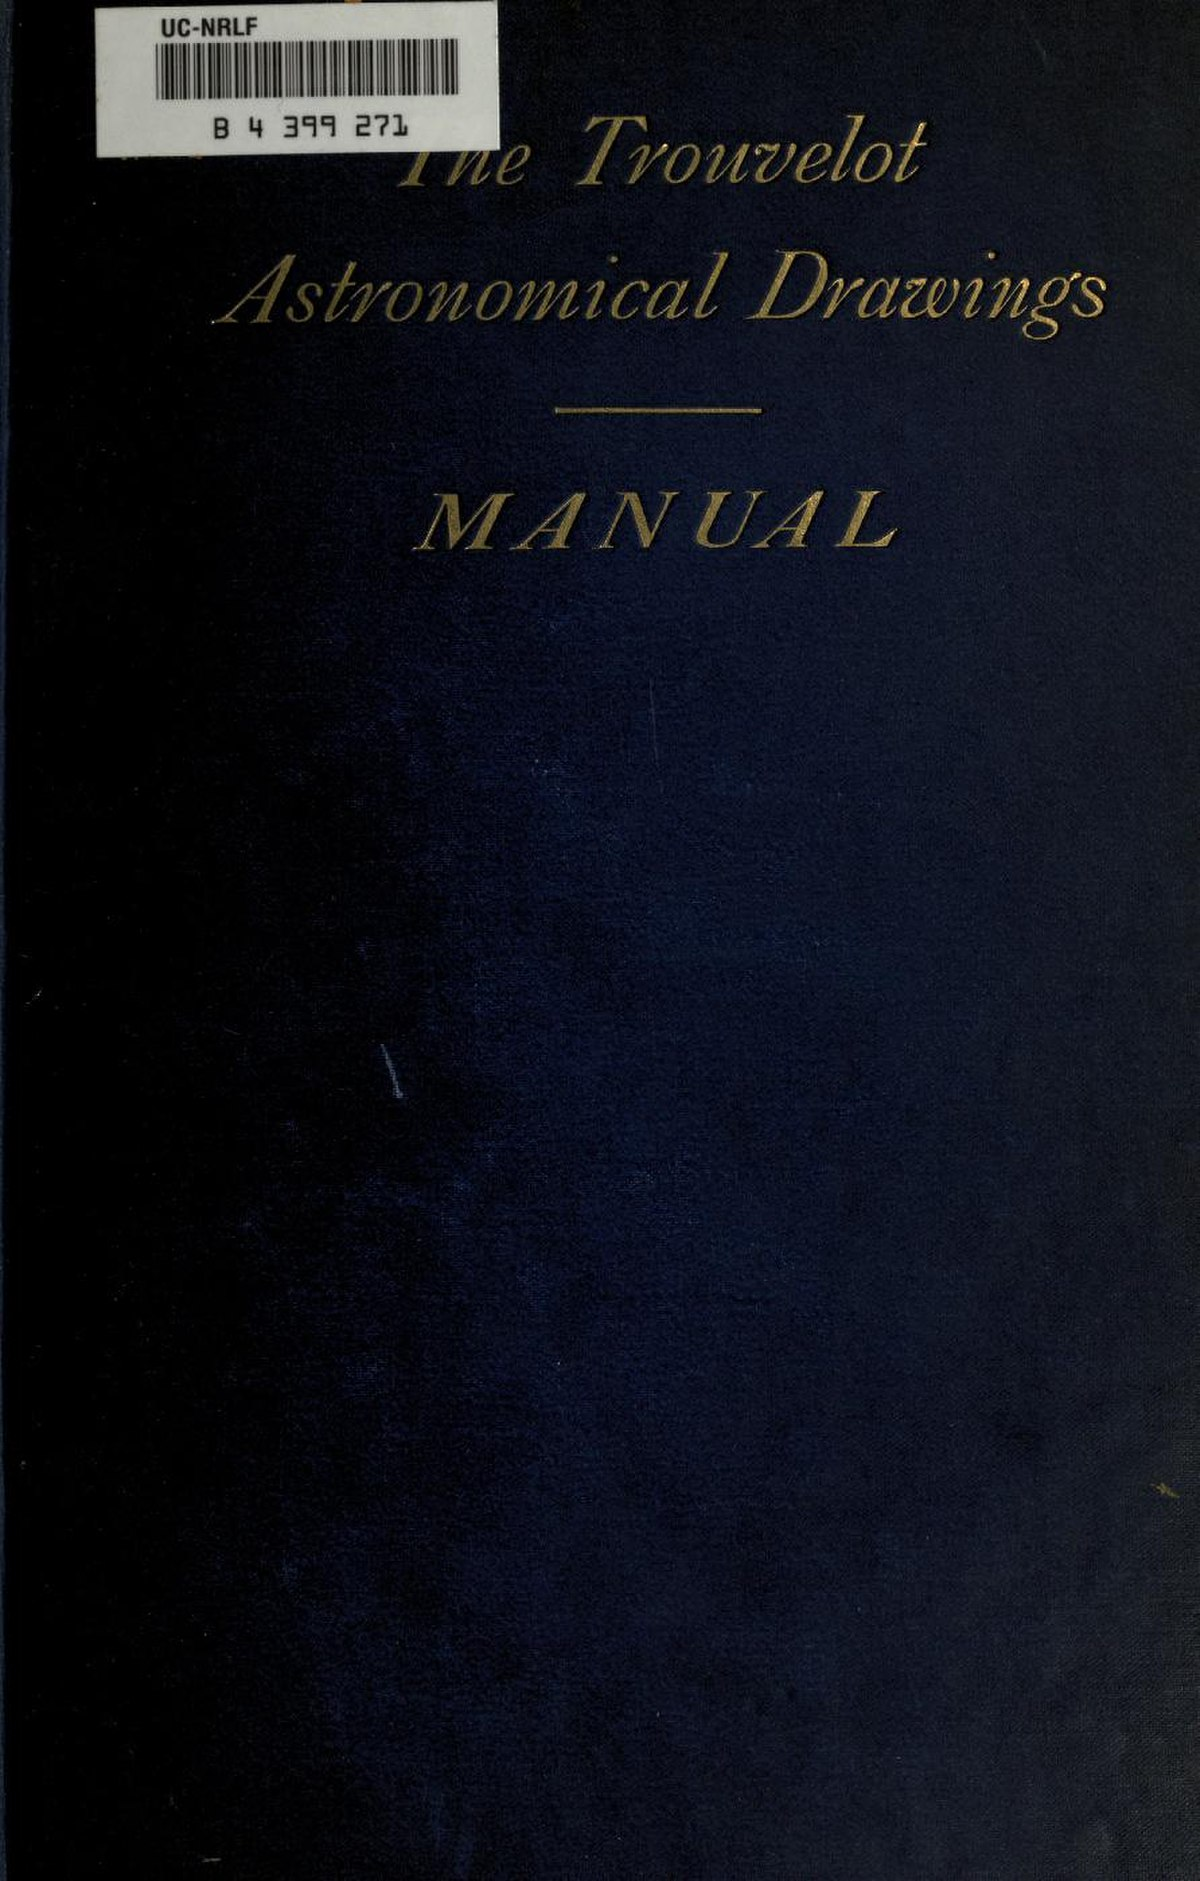 File:The Trouvelot astronomical drawings manual.pdf - Wikimedia ...